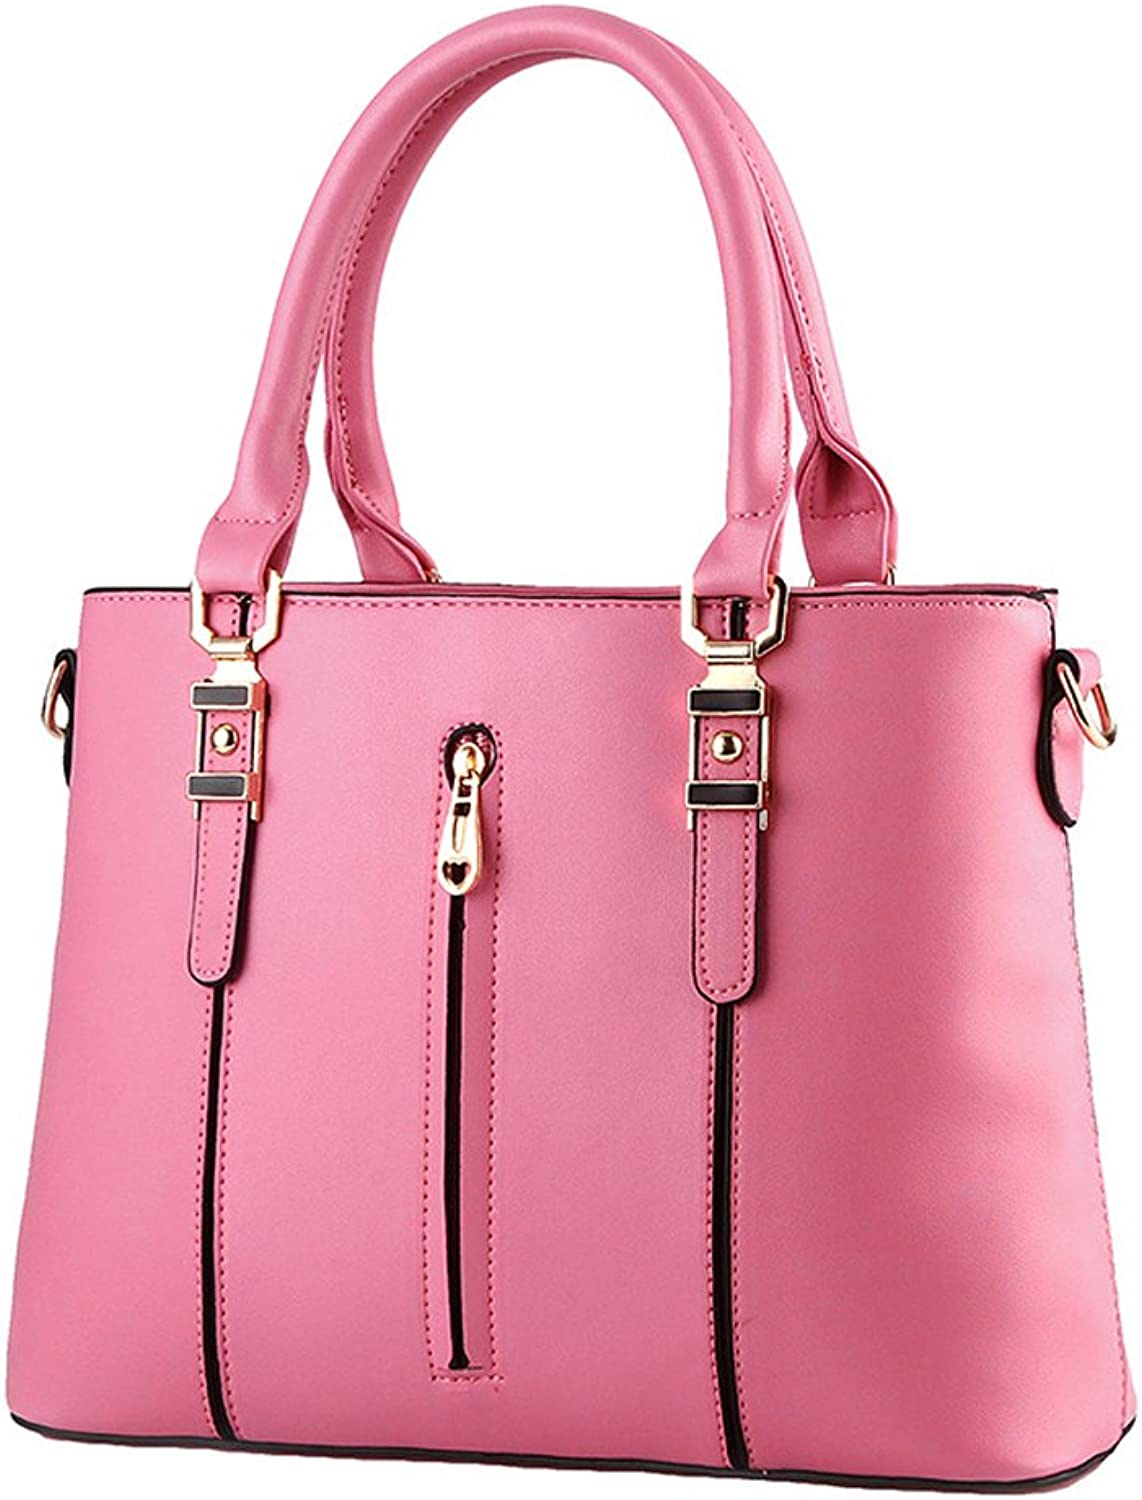 Fleeting Time Womens Spring Ladies Zipper Fashion Handbag Crossbody Bag